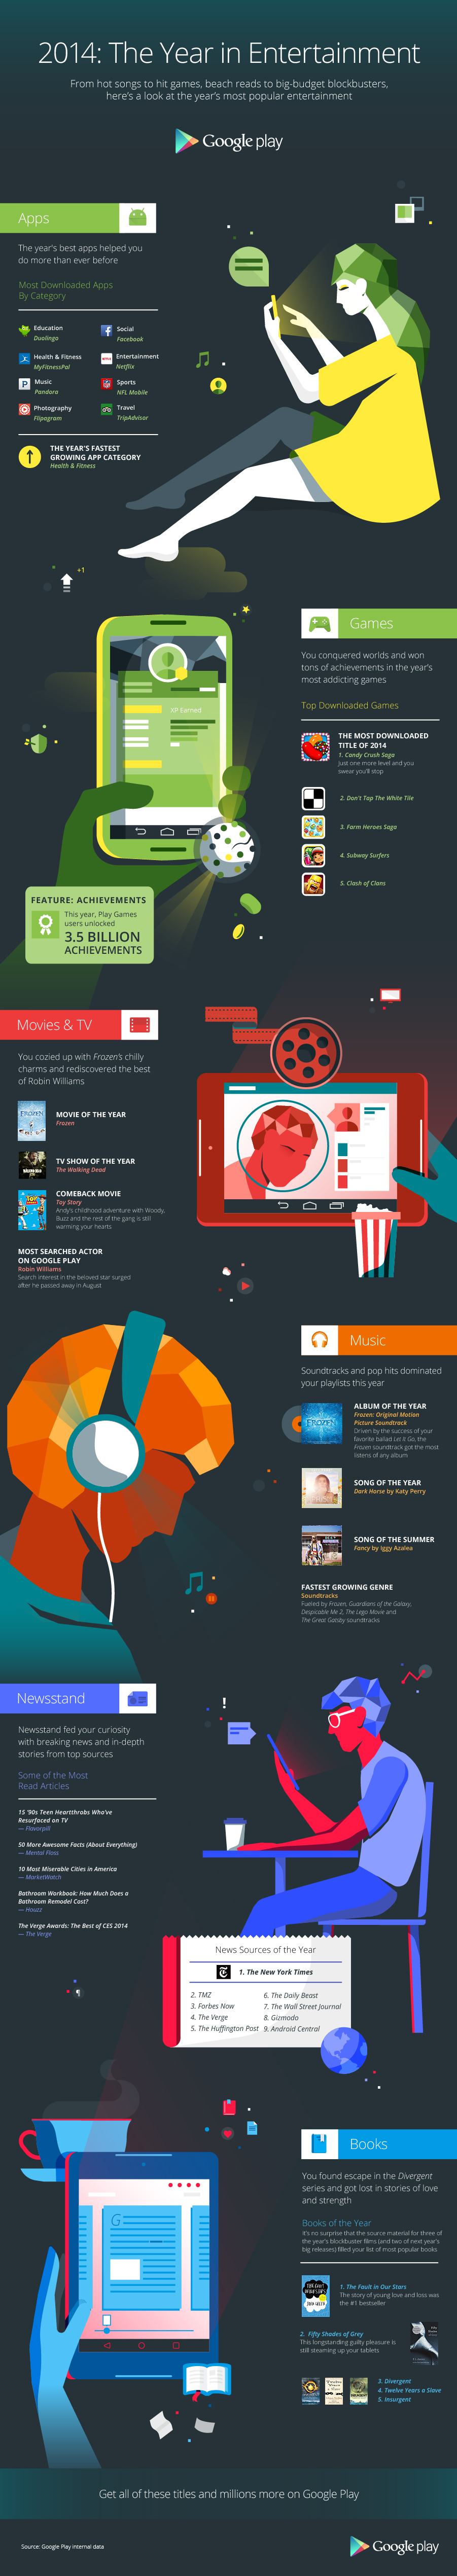 http://cdn1.tnwcdn.com/wp-content/blogs.dir/1/files/2014/12/Google-Play-End-of-Year-Infographic-2014-FINAL.jpg